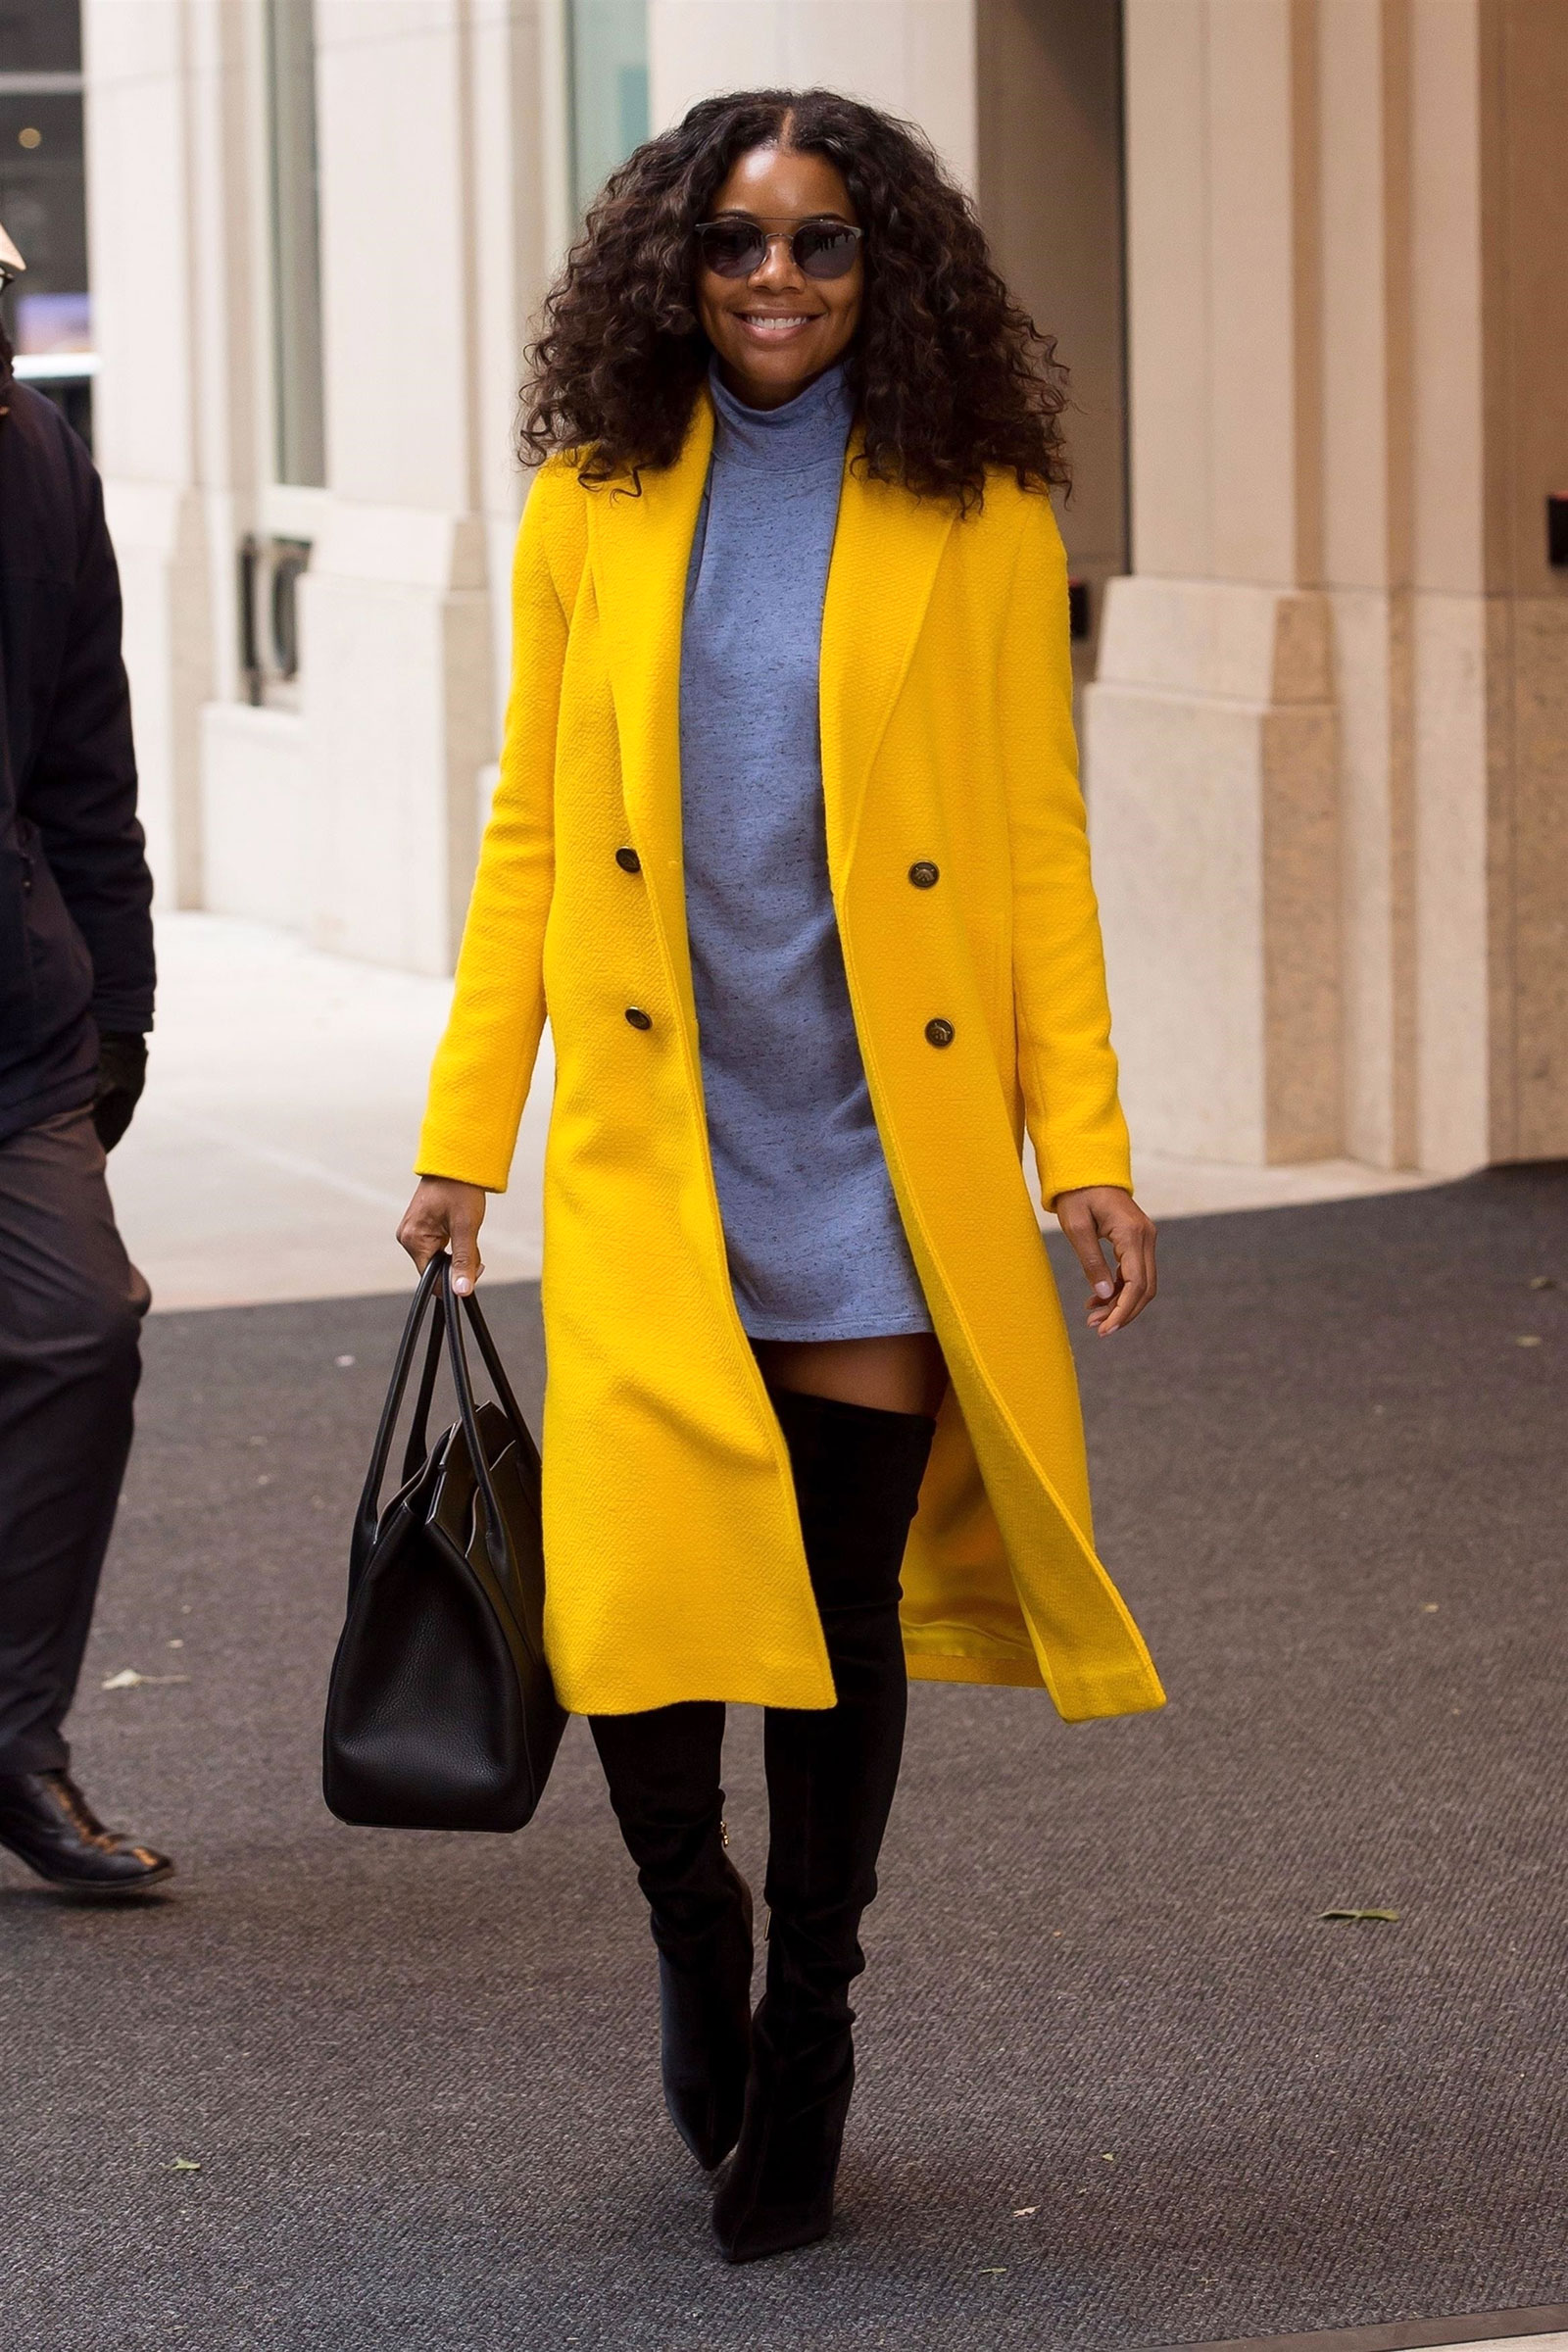 Gabrielle Union wears a bright yellow wool coat with a gray sweatedress and black over-the-knee boots.